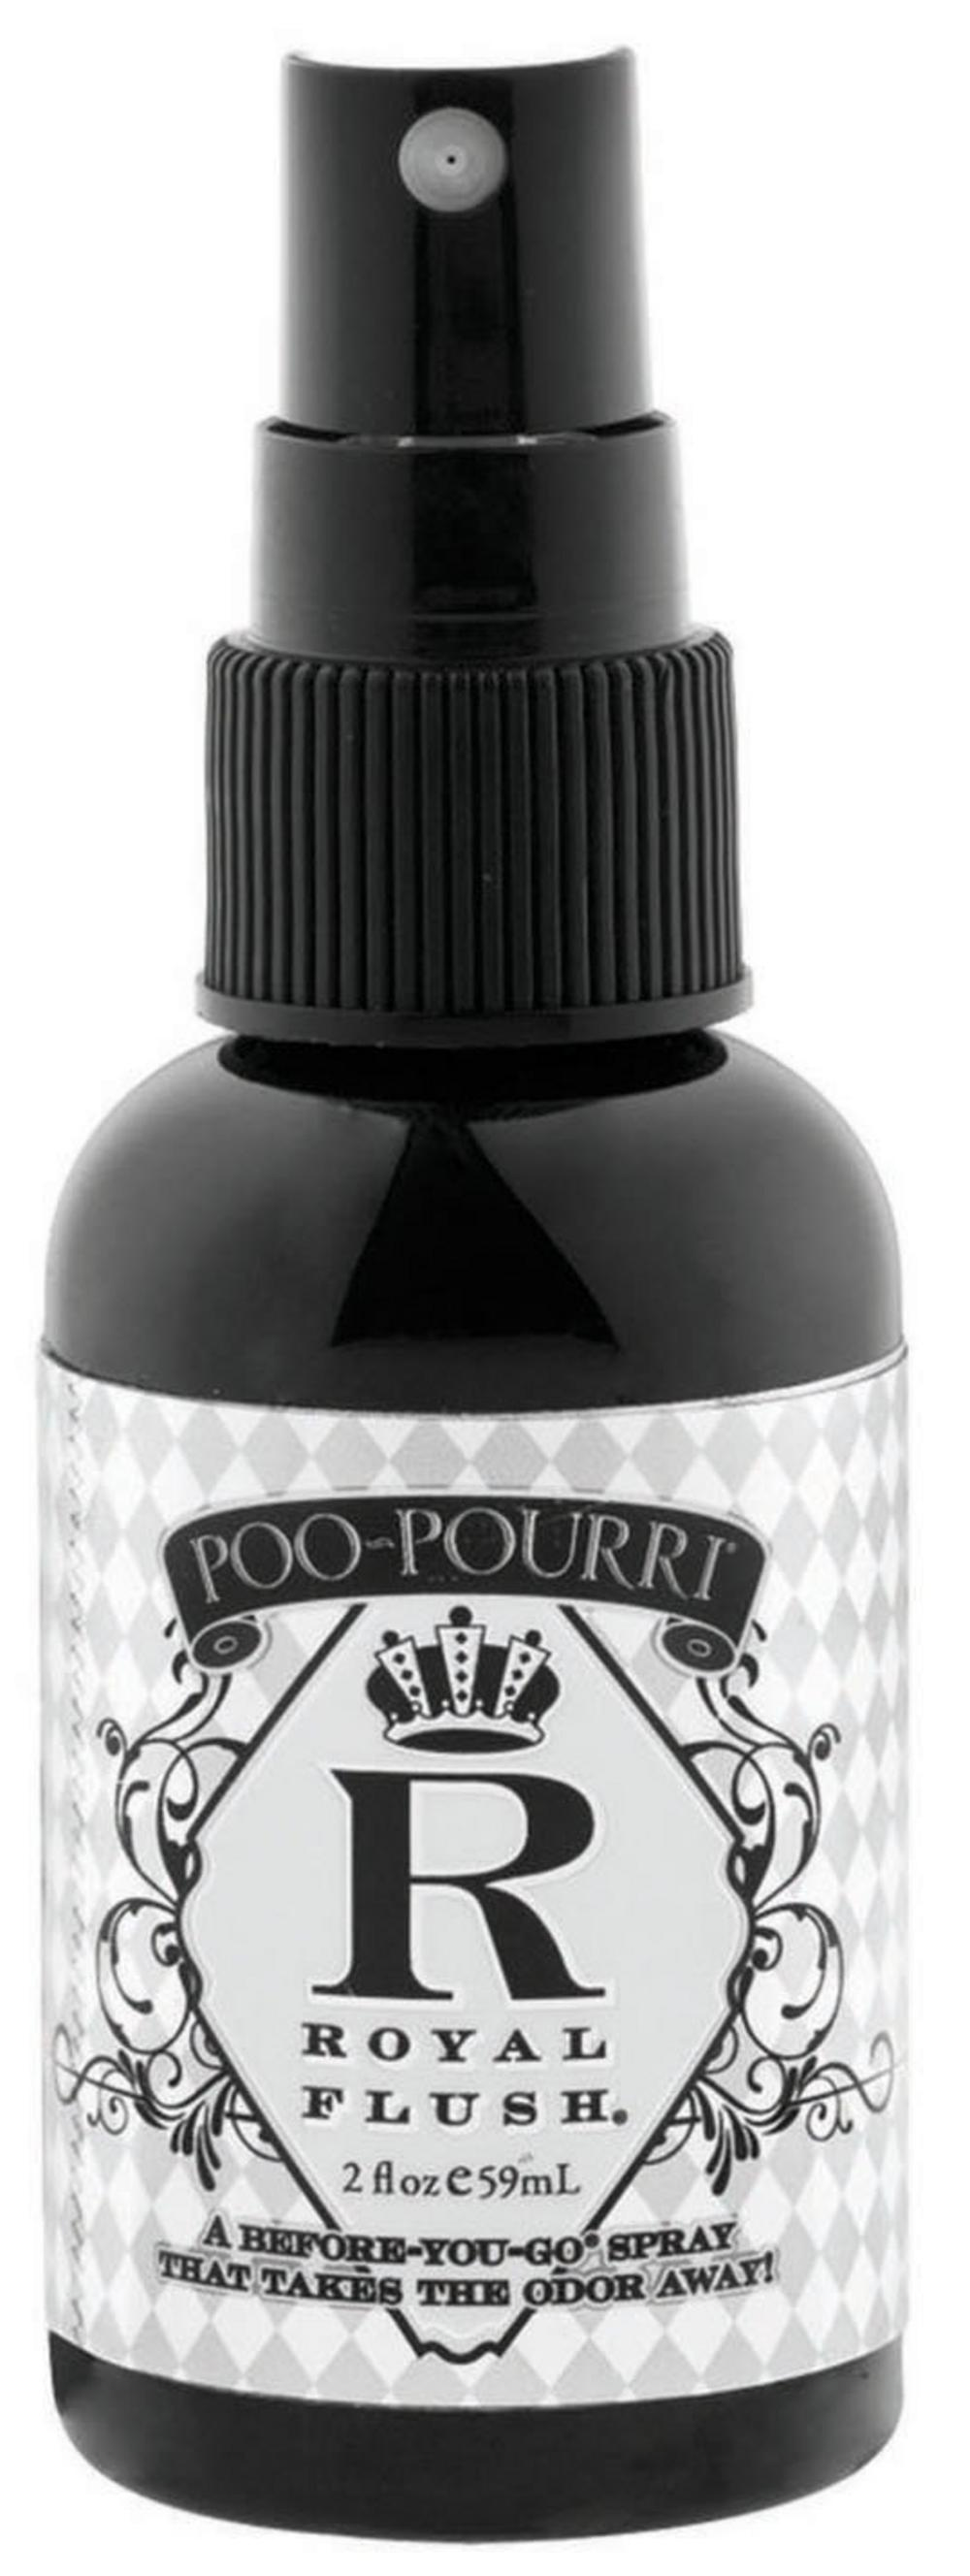 Poo Pourri Royal Flush Toilet Spray 2Oz -Ideal For A Gift-Dinner Party-Your Home